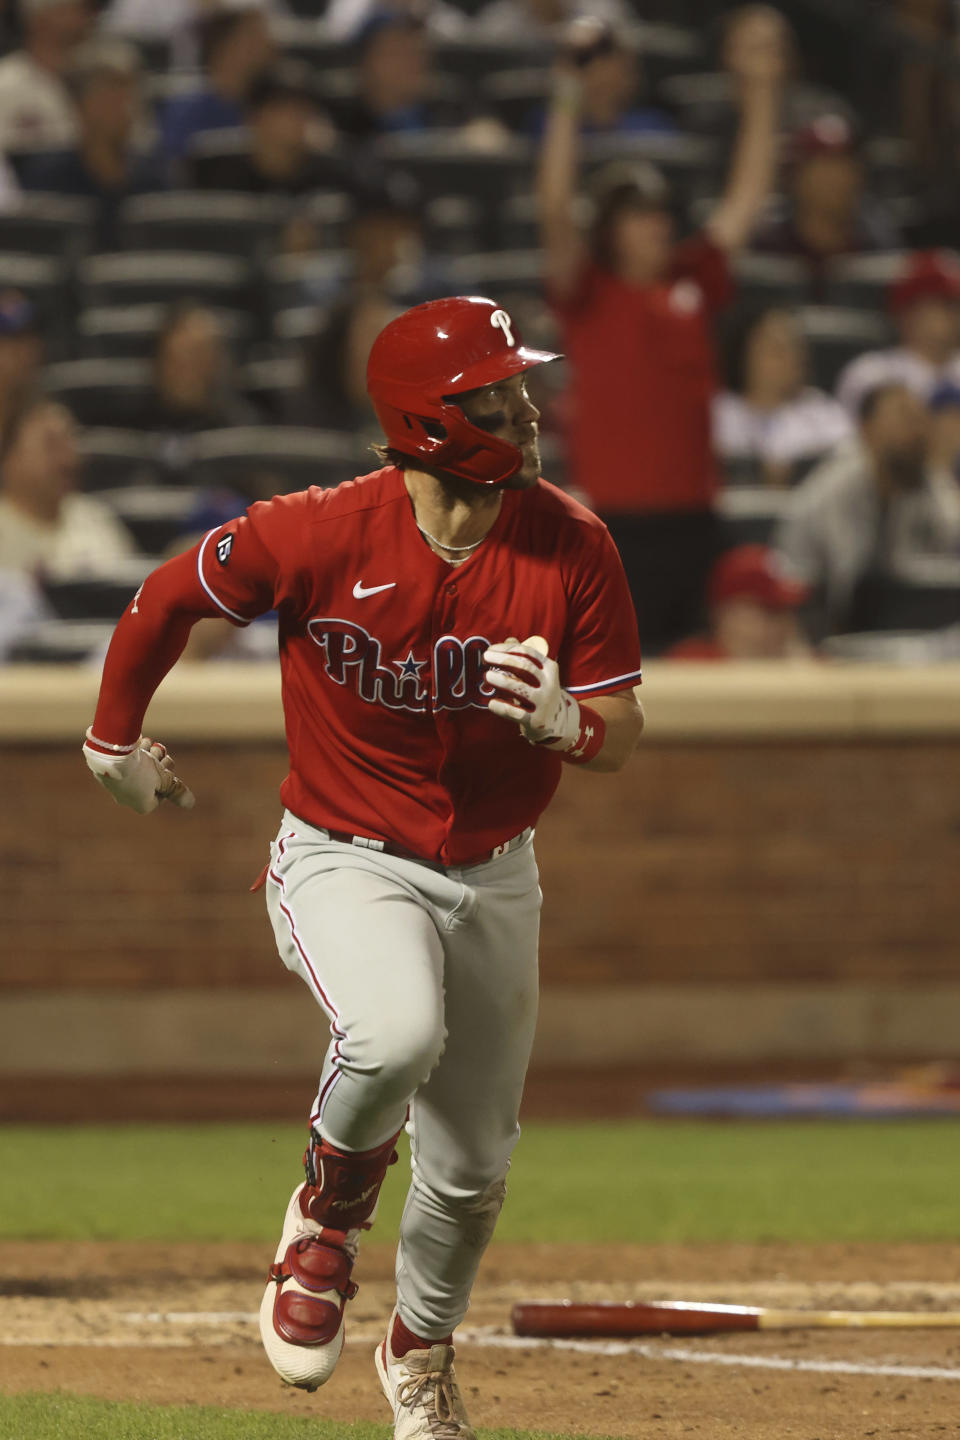 Philadelphia Phillies' Bryce Harper runs after hitting a sacrifice fly during the fifth inning of a baseball game against the New York Mets, Sunday, Sept. 19, 2021, in New York. (AP Photo/Jason DeCrow)